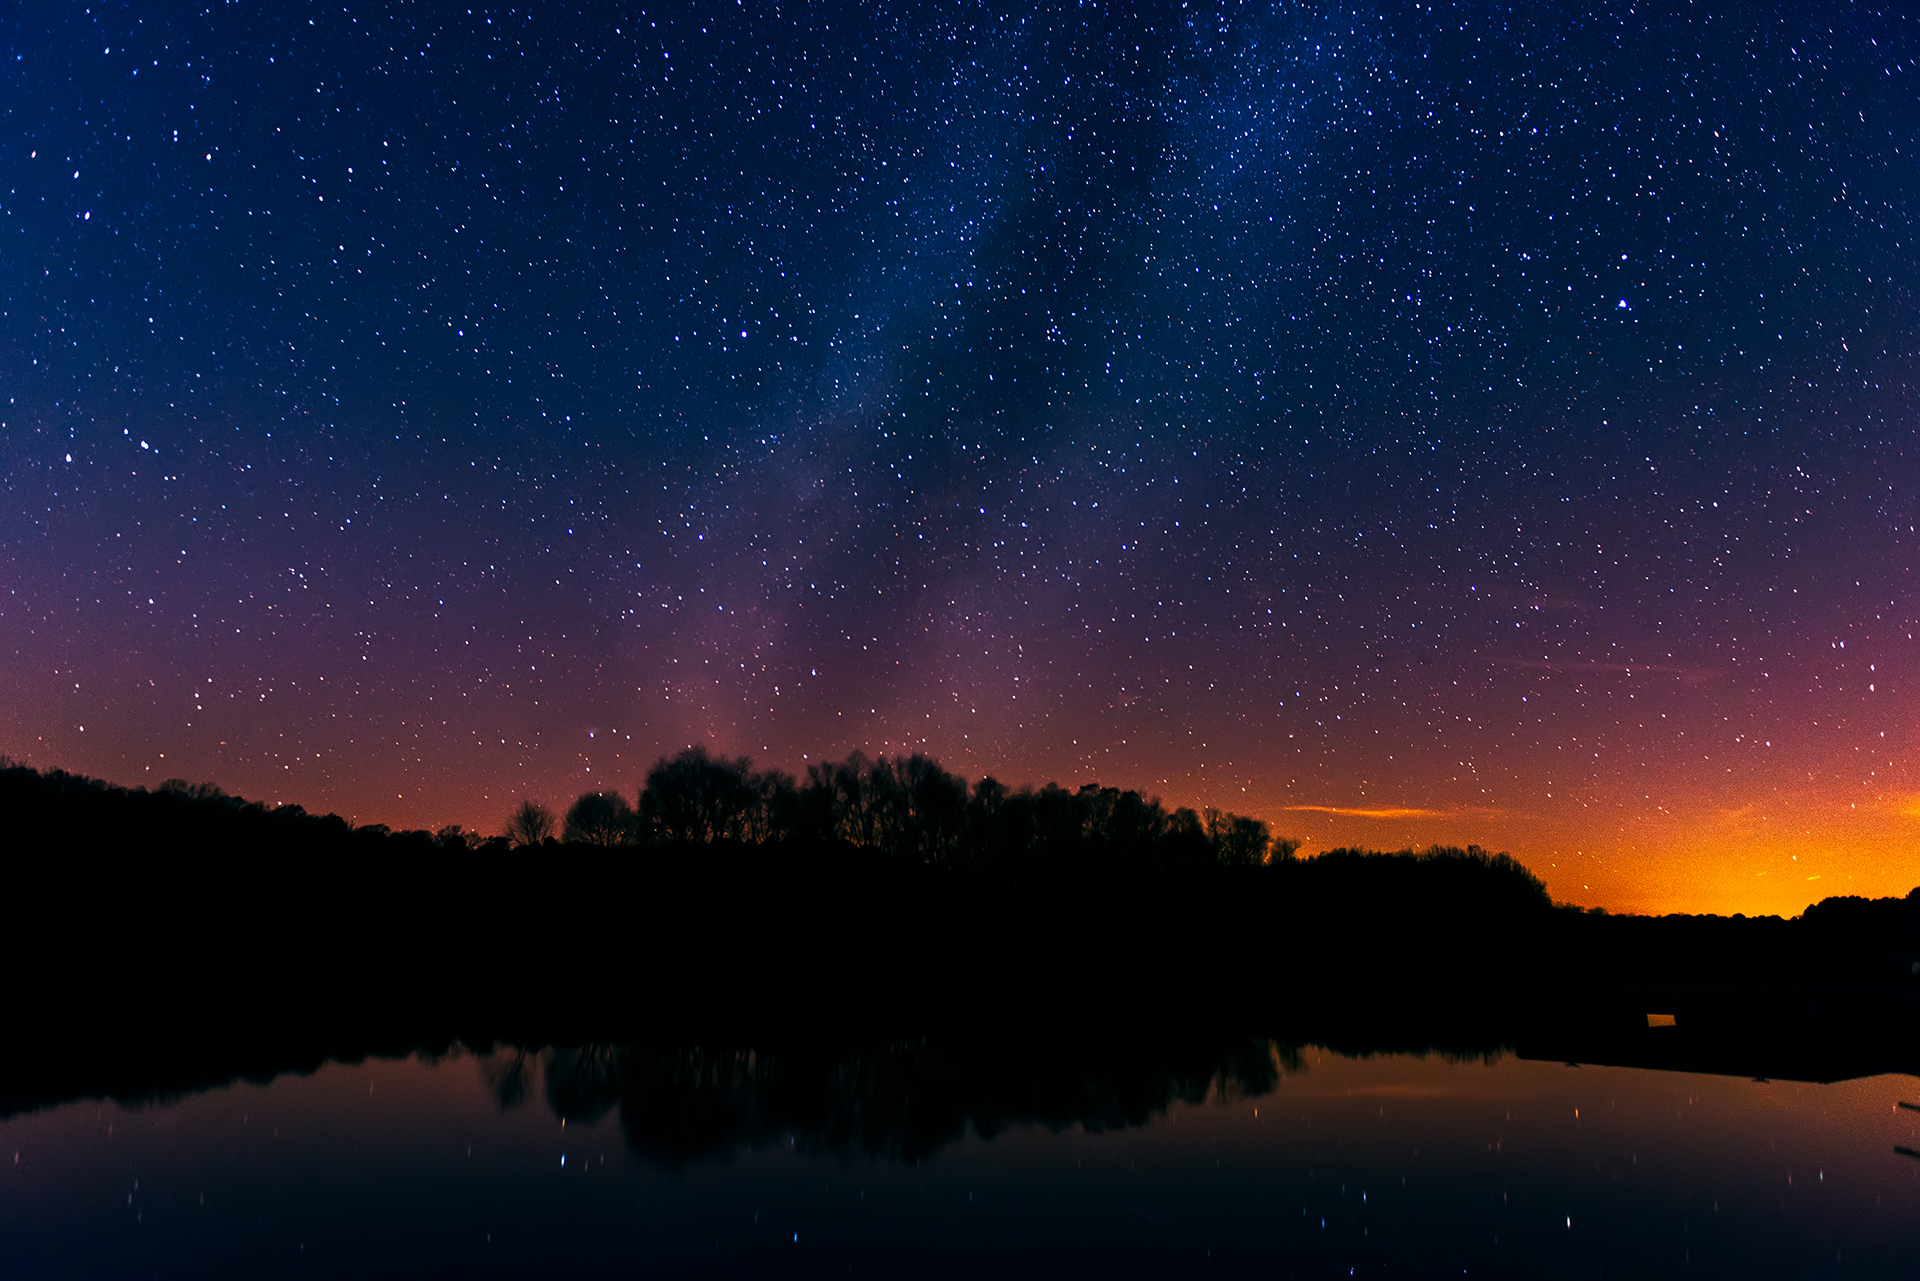 Fire in the Milky Way - Snake Creek Park